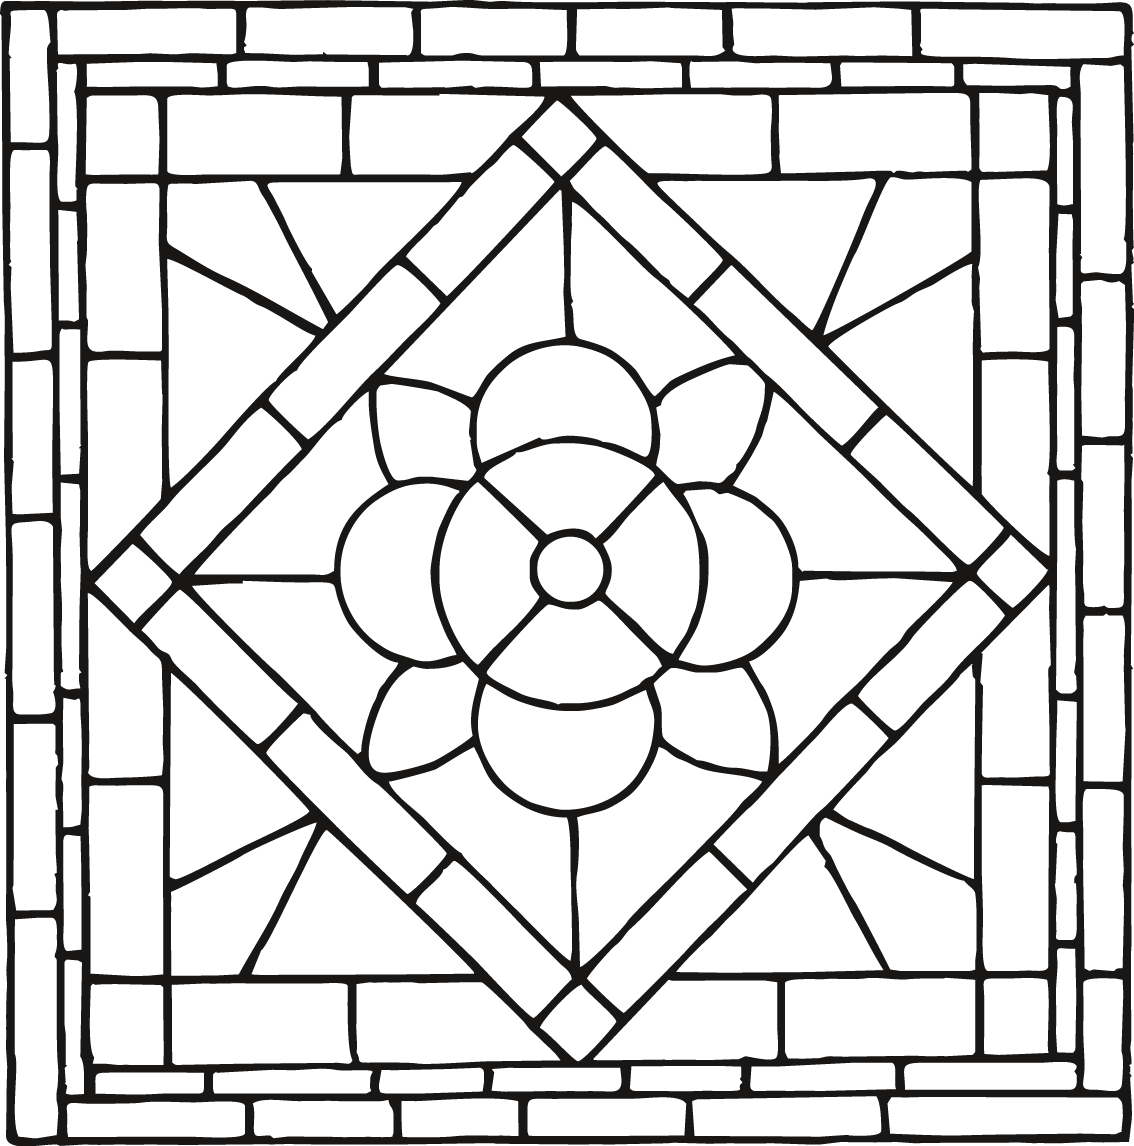 Window motif drawing traditional. Chinese patterns png image freeuse download